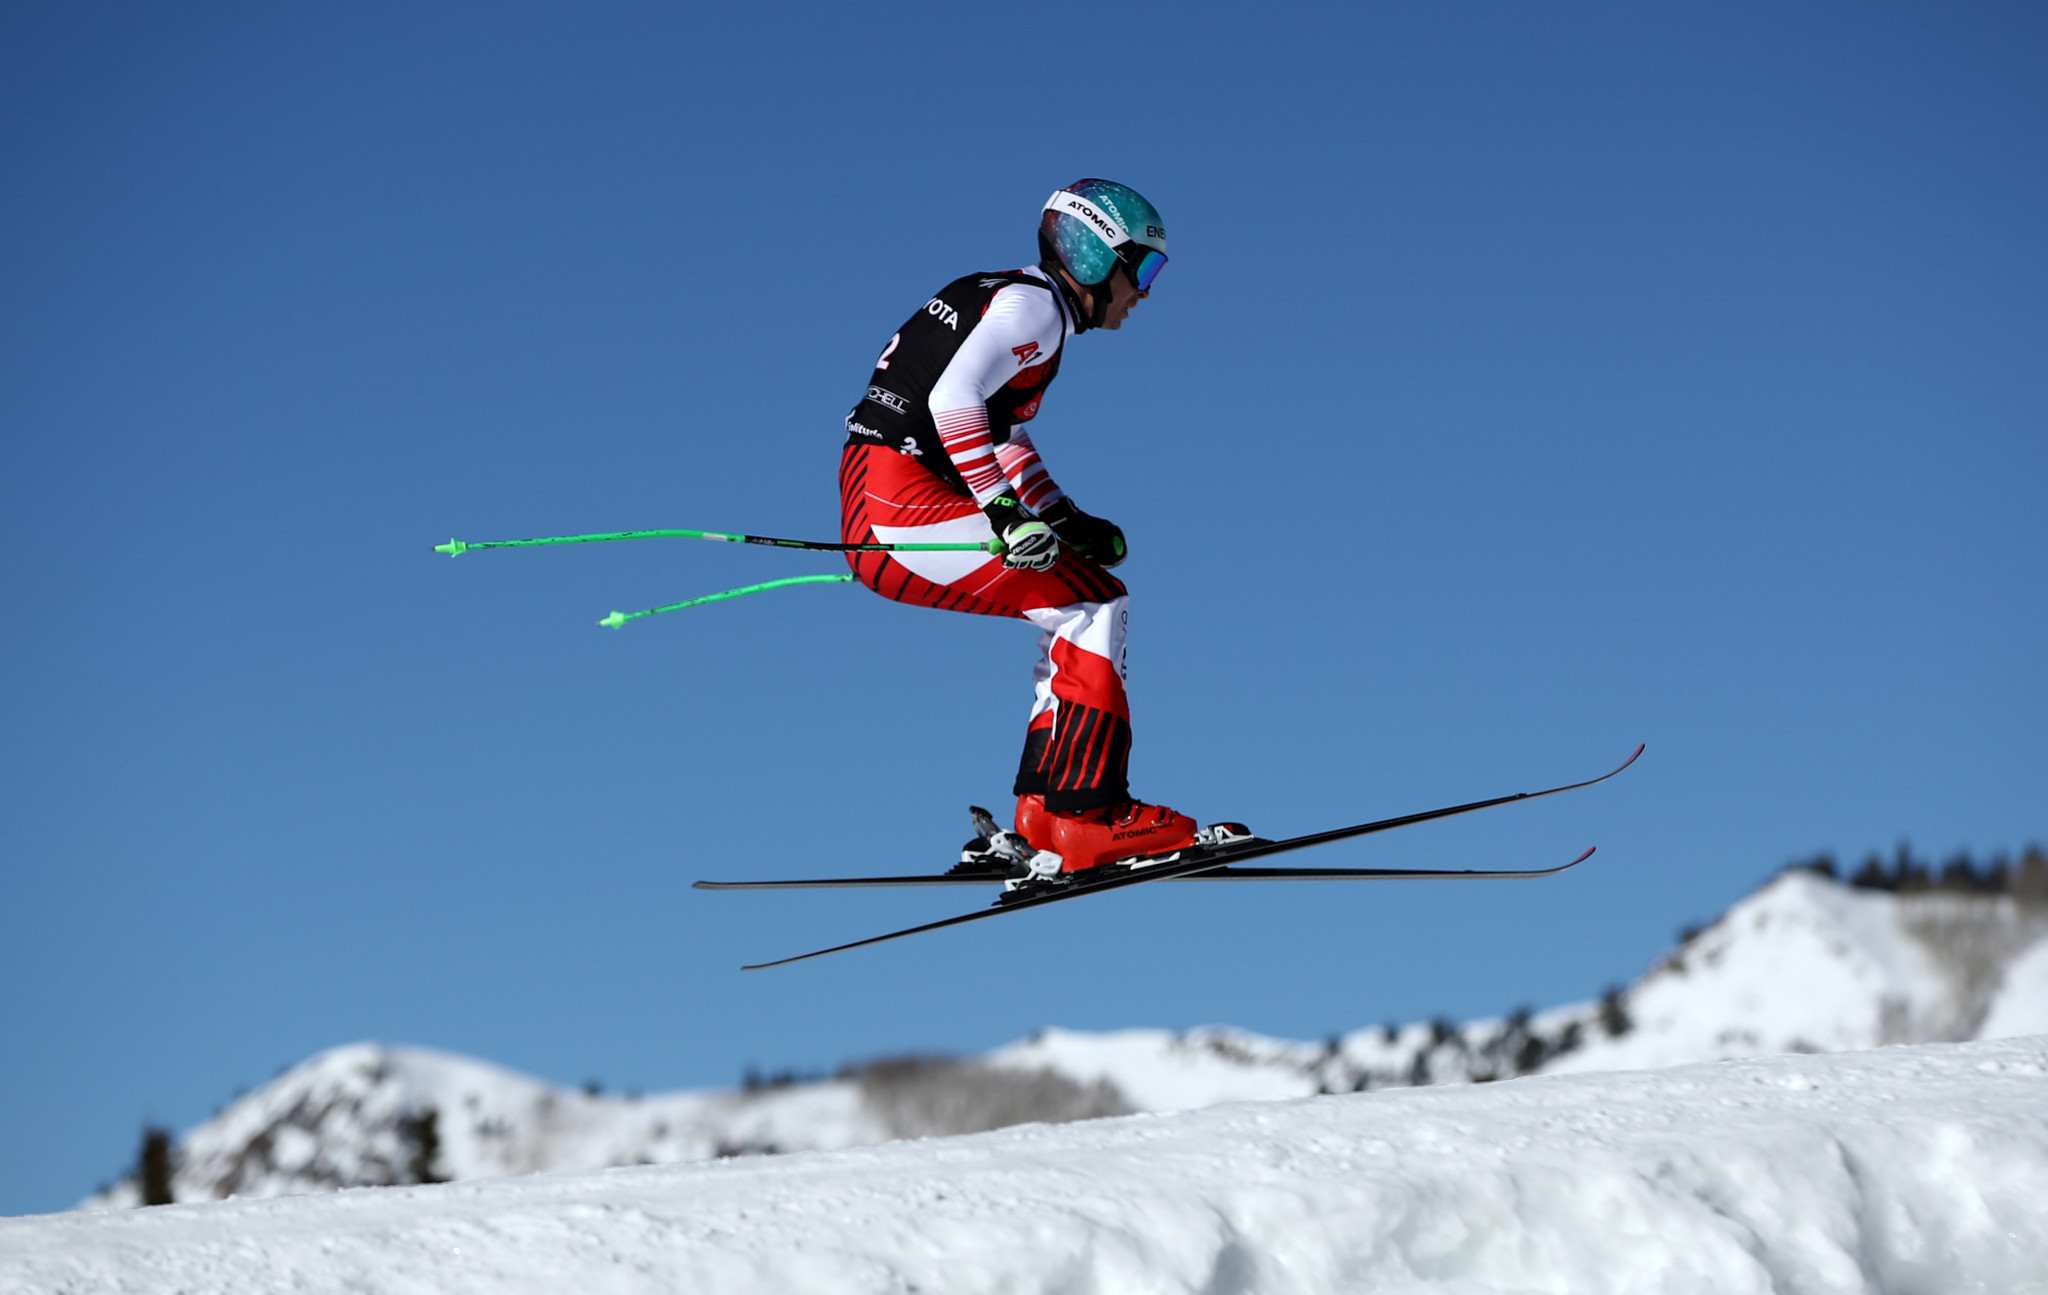 Johannes Rohrweck was the winner of the men's event at the FIS Ski Cross World Cup in Reiteralm ©Getty Images